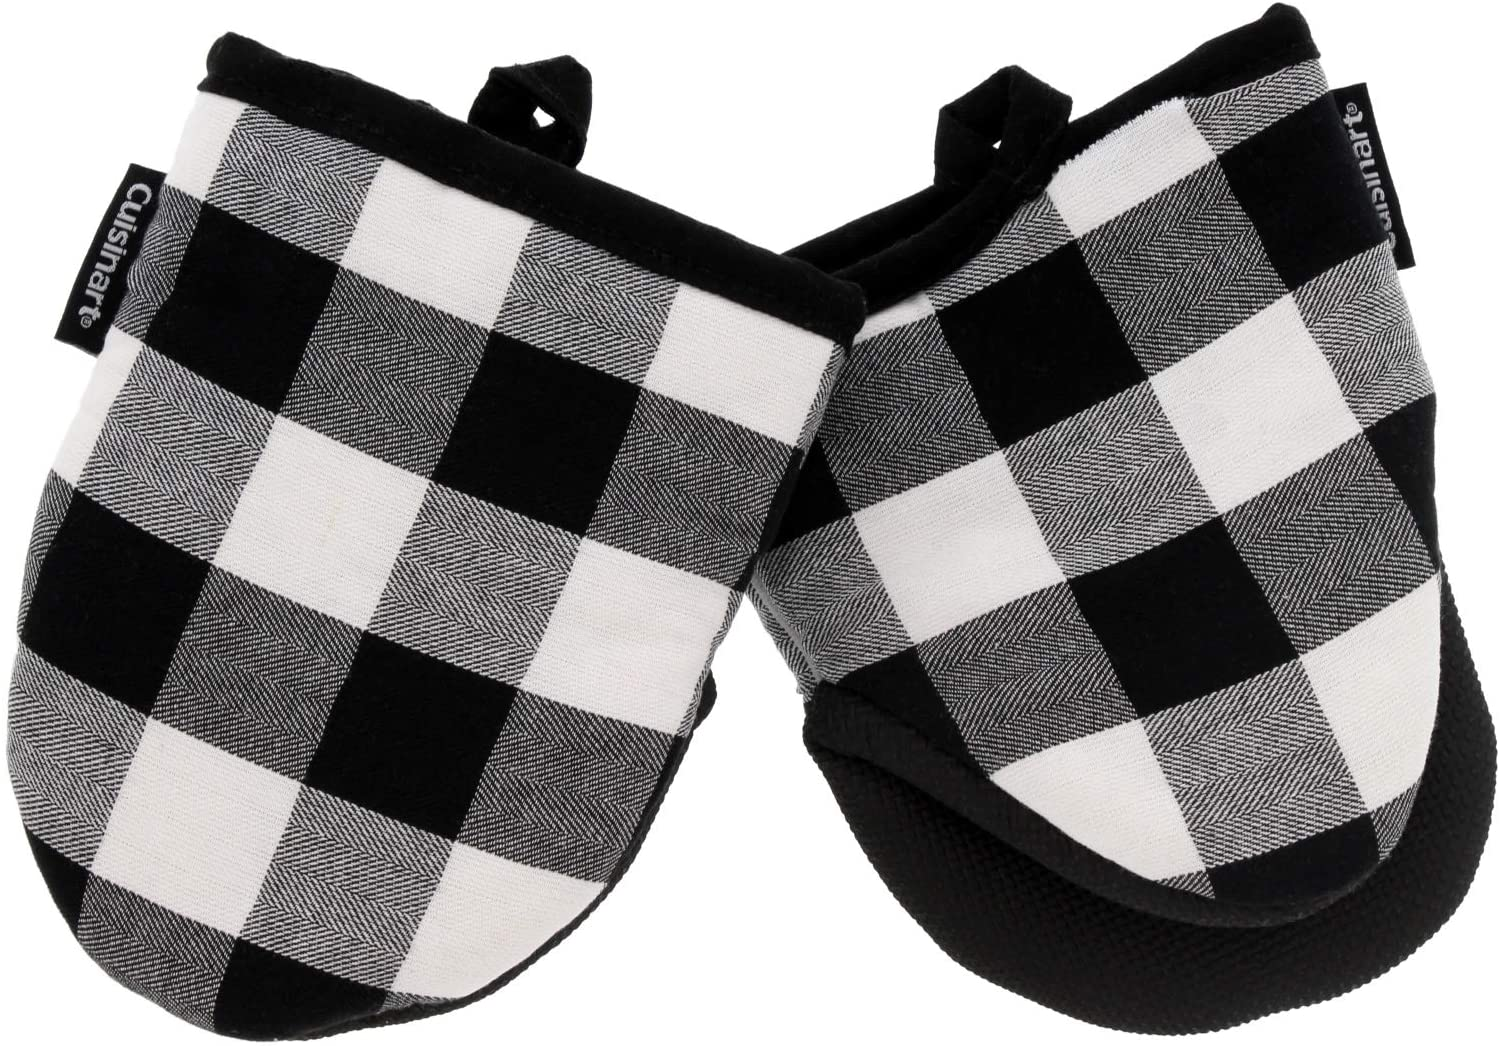 Cuisinart Neoprene Mini Oven Mitts, 2pk - Heat Resistant Oven Gloves Protect Hands and Surfaces with Non-Slip Grip and Hanging Loop-Ideal Set for Handling Hot Cookware - Buffalo Check, Jet Black